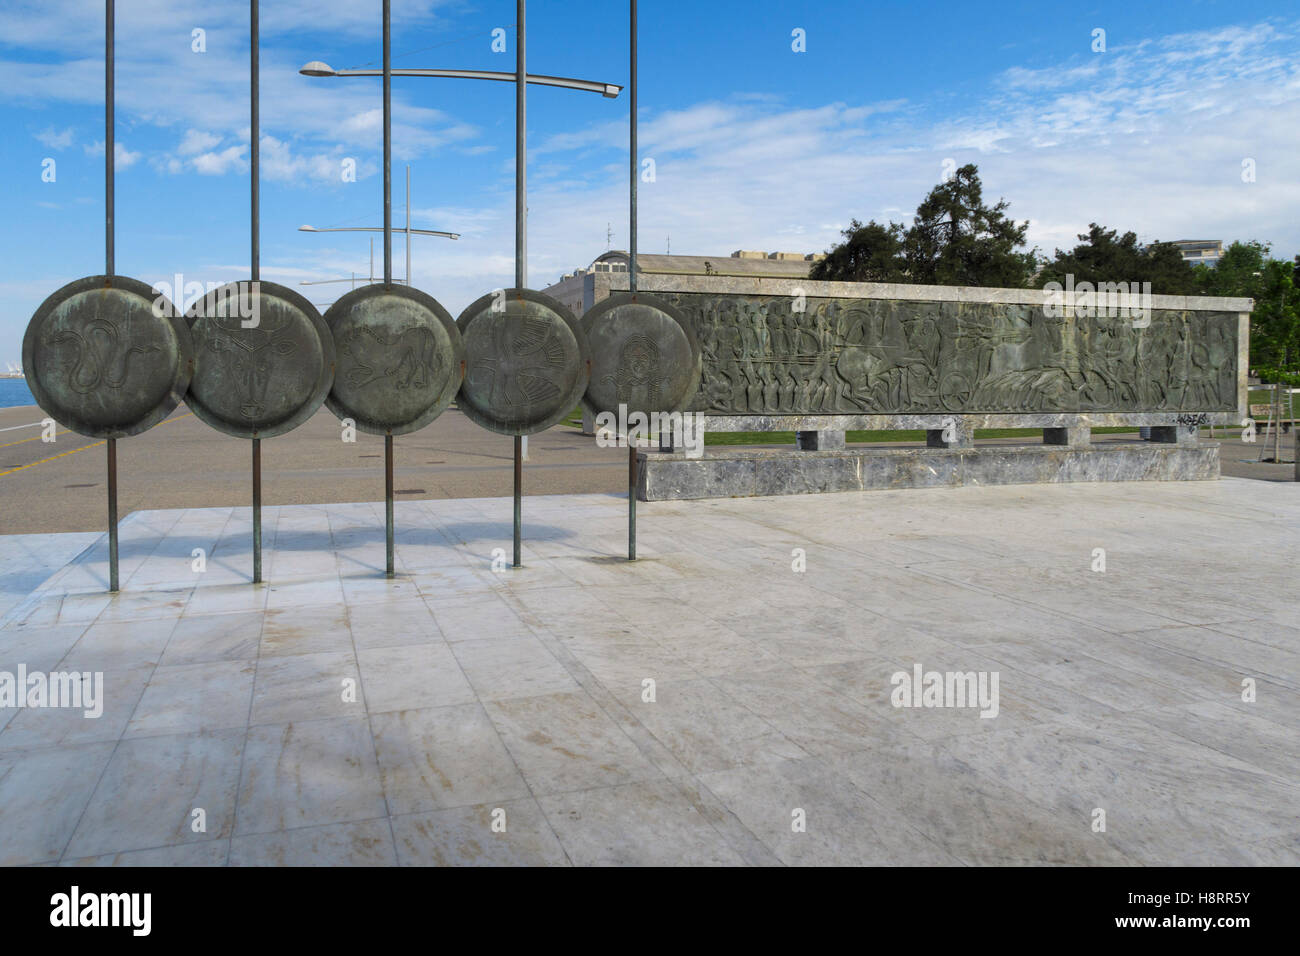 Macedonian shields on the Monument of Alexander The Great in Thessaloniki, Greece, Europe - Stock Image